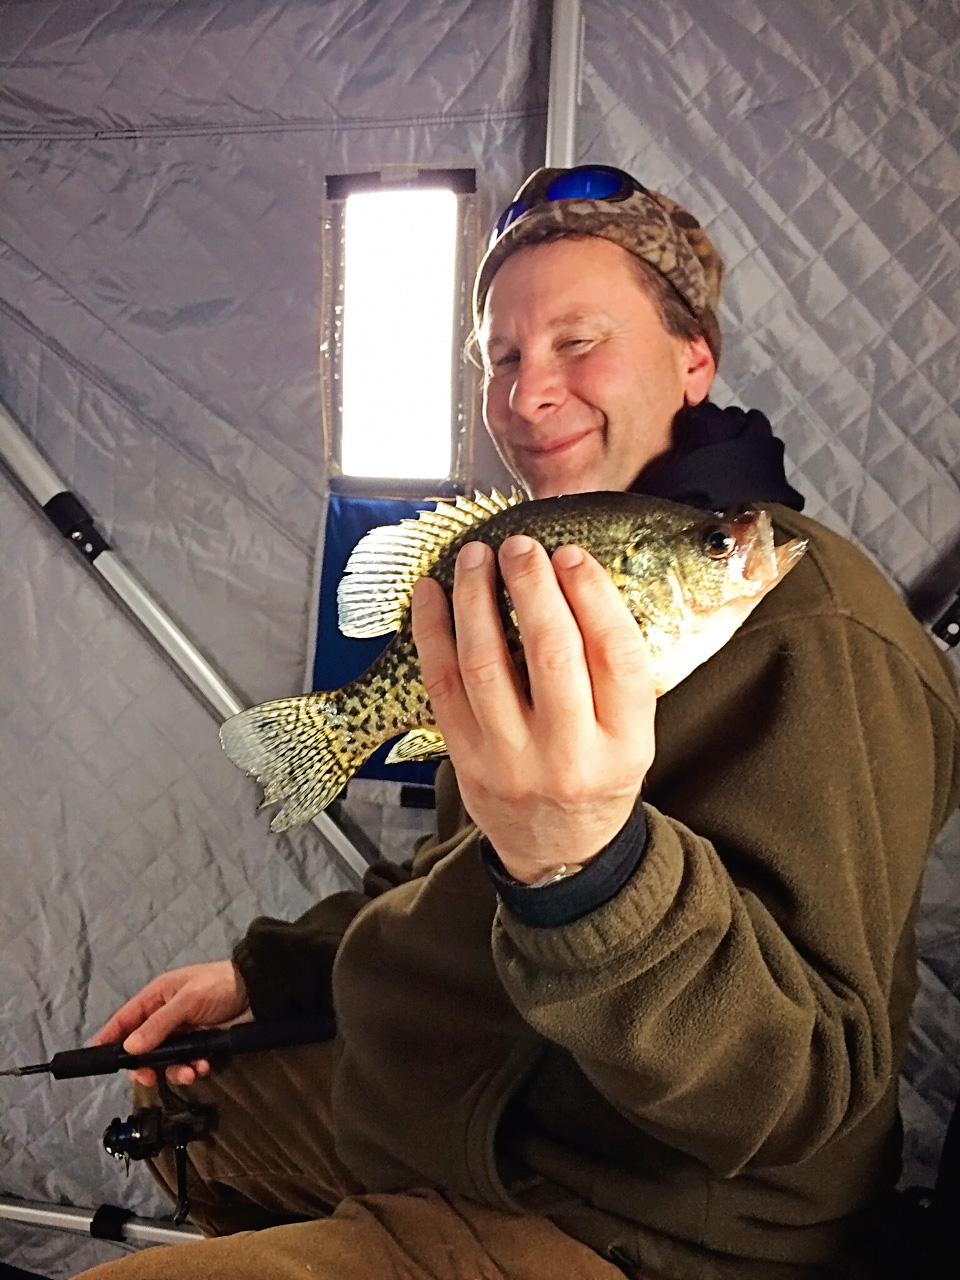 Crappie caught during ice fishing in northern MN